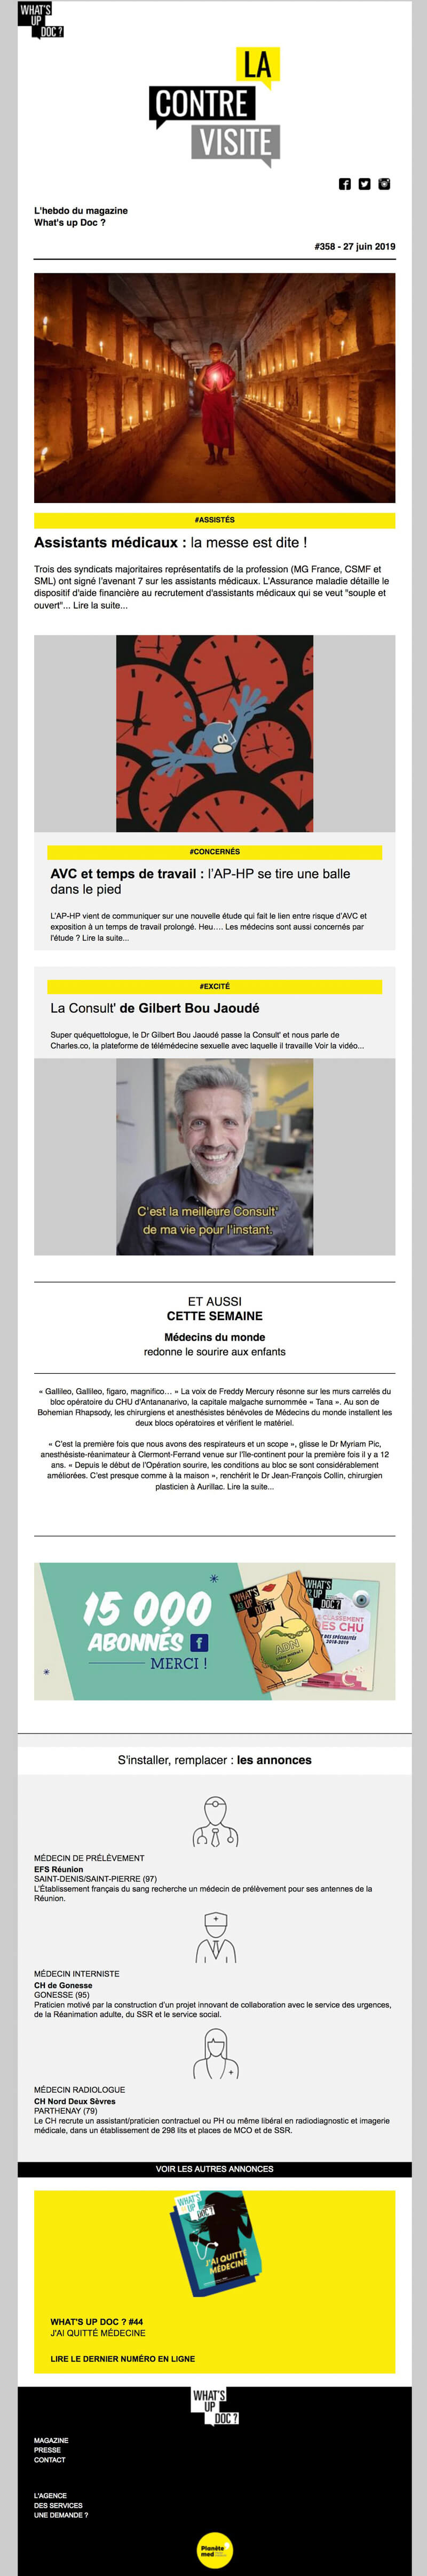 Newsletter La Contre Visite